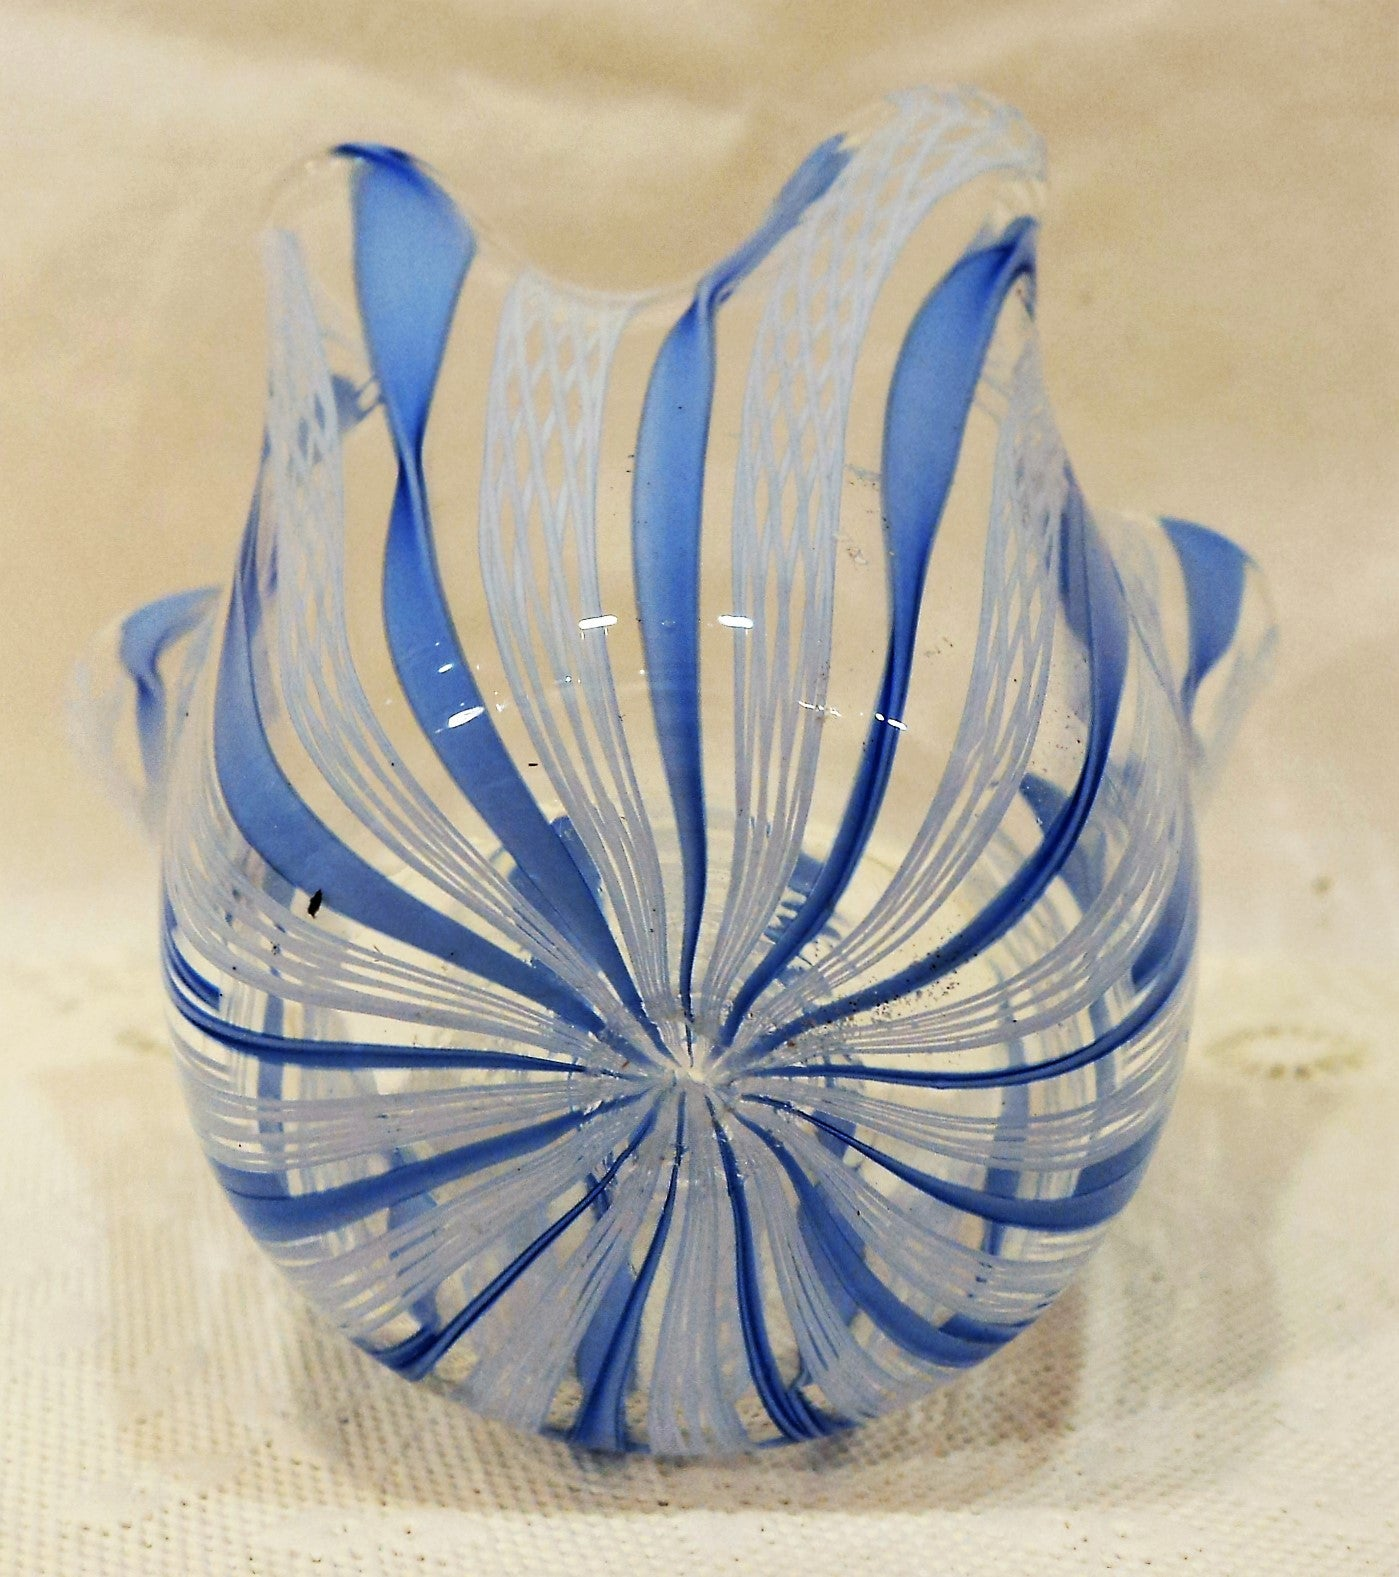 Blue Venini Art Glass Murano Handkerchief Vase